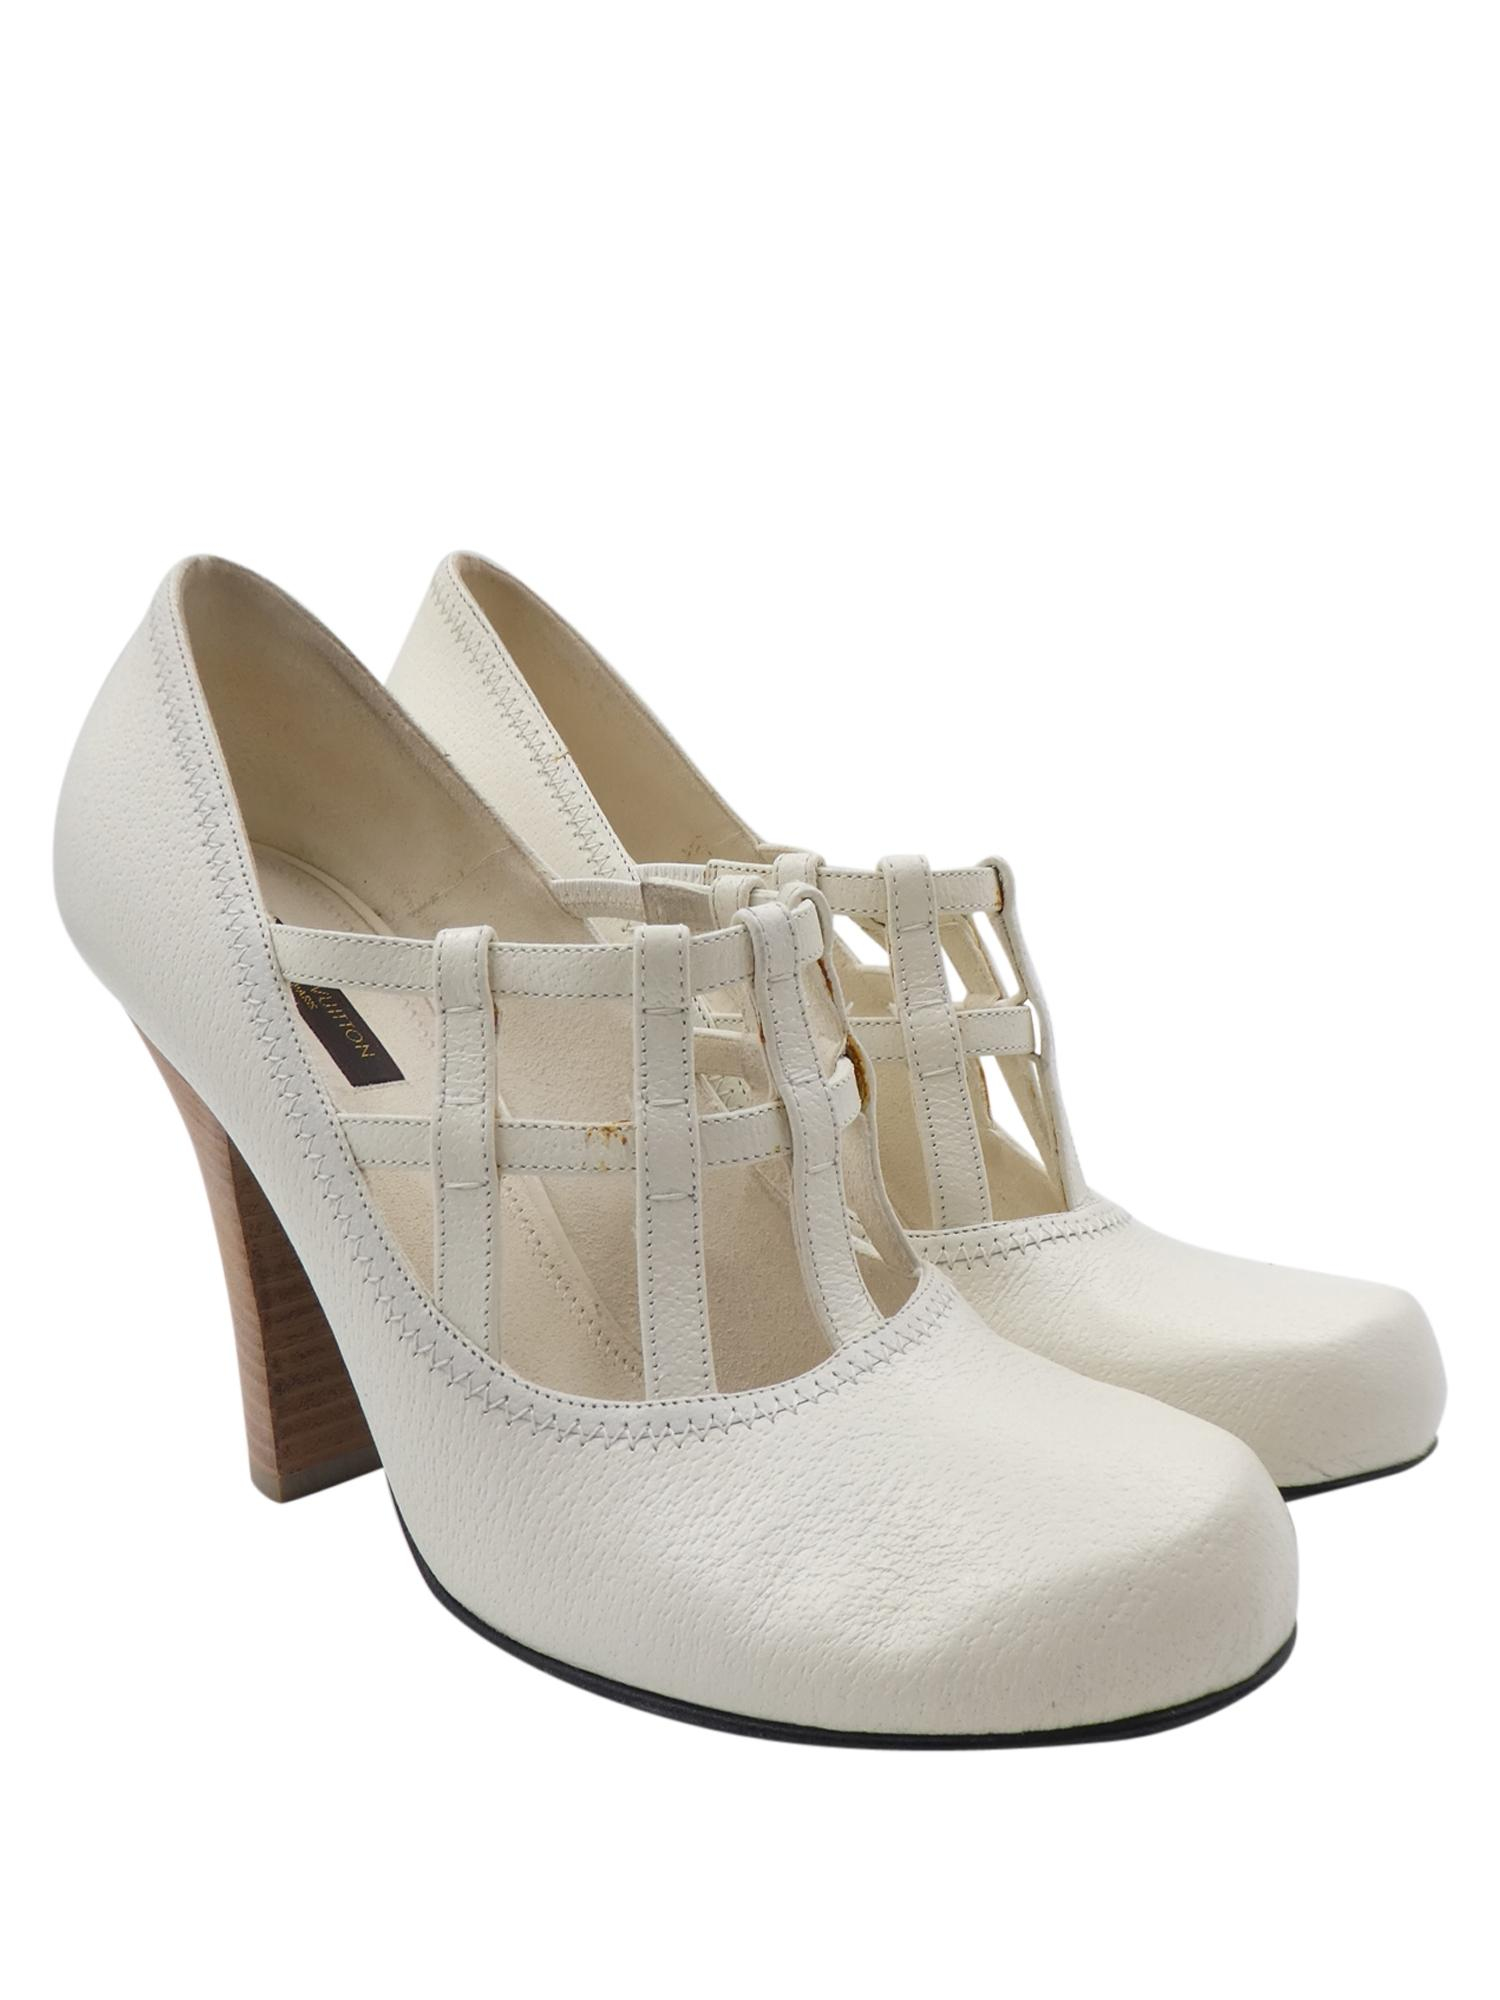 Louis Vuitton Chunky Mary Jane Heels White Pumps Wedding Shoes